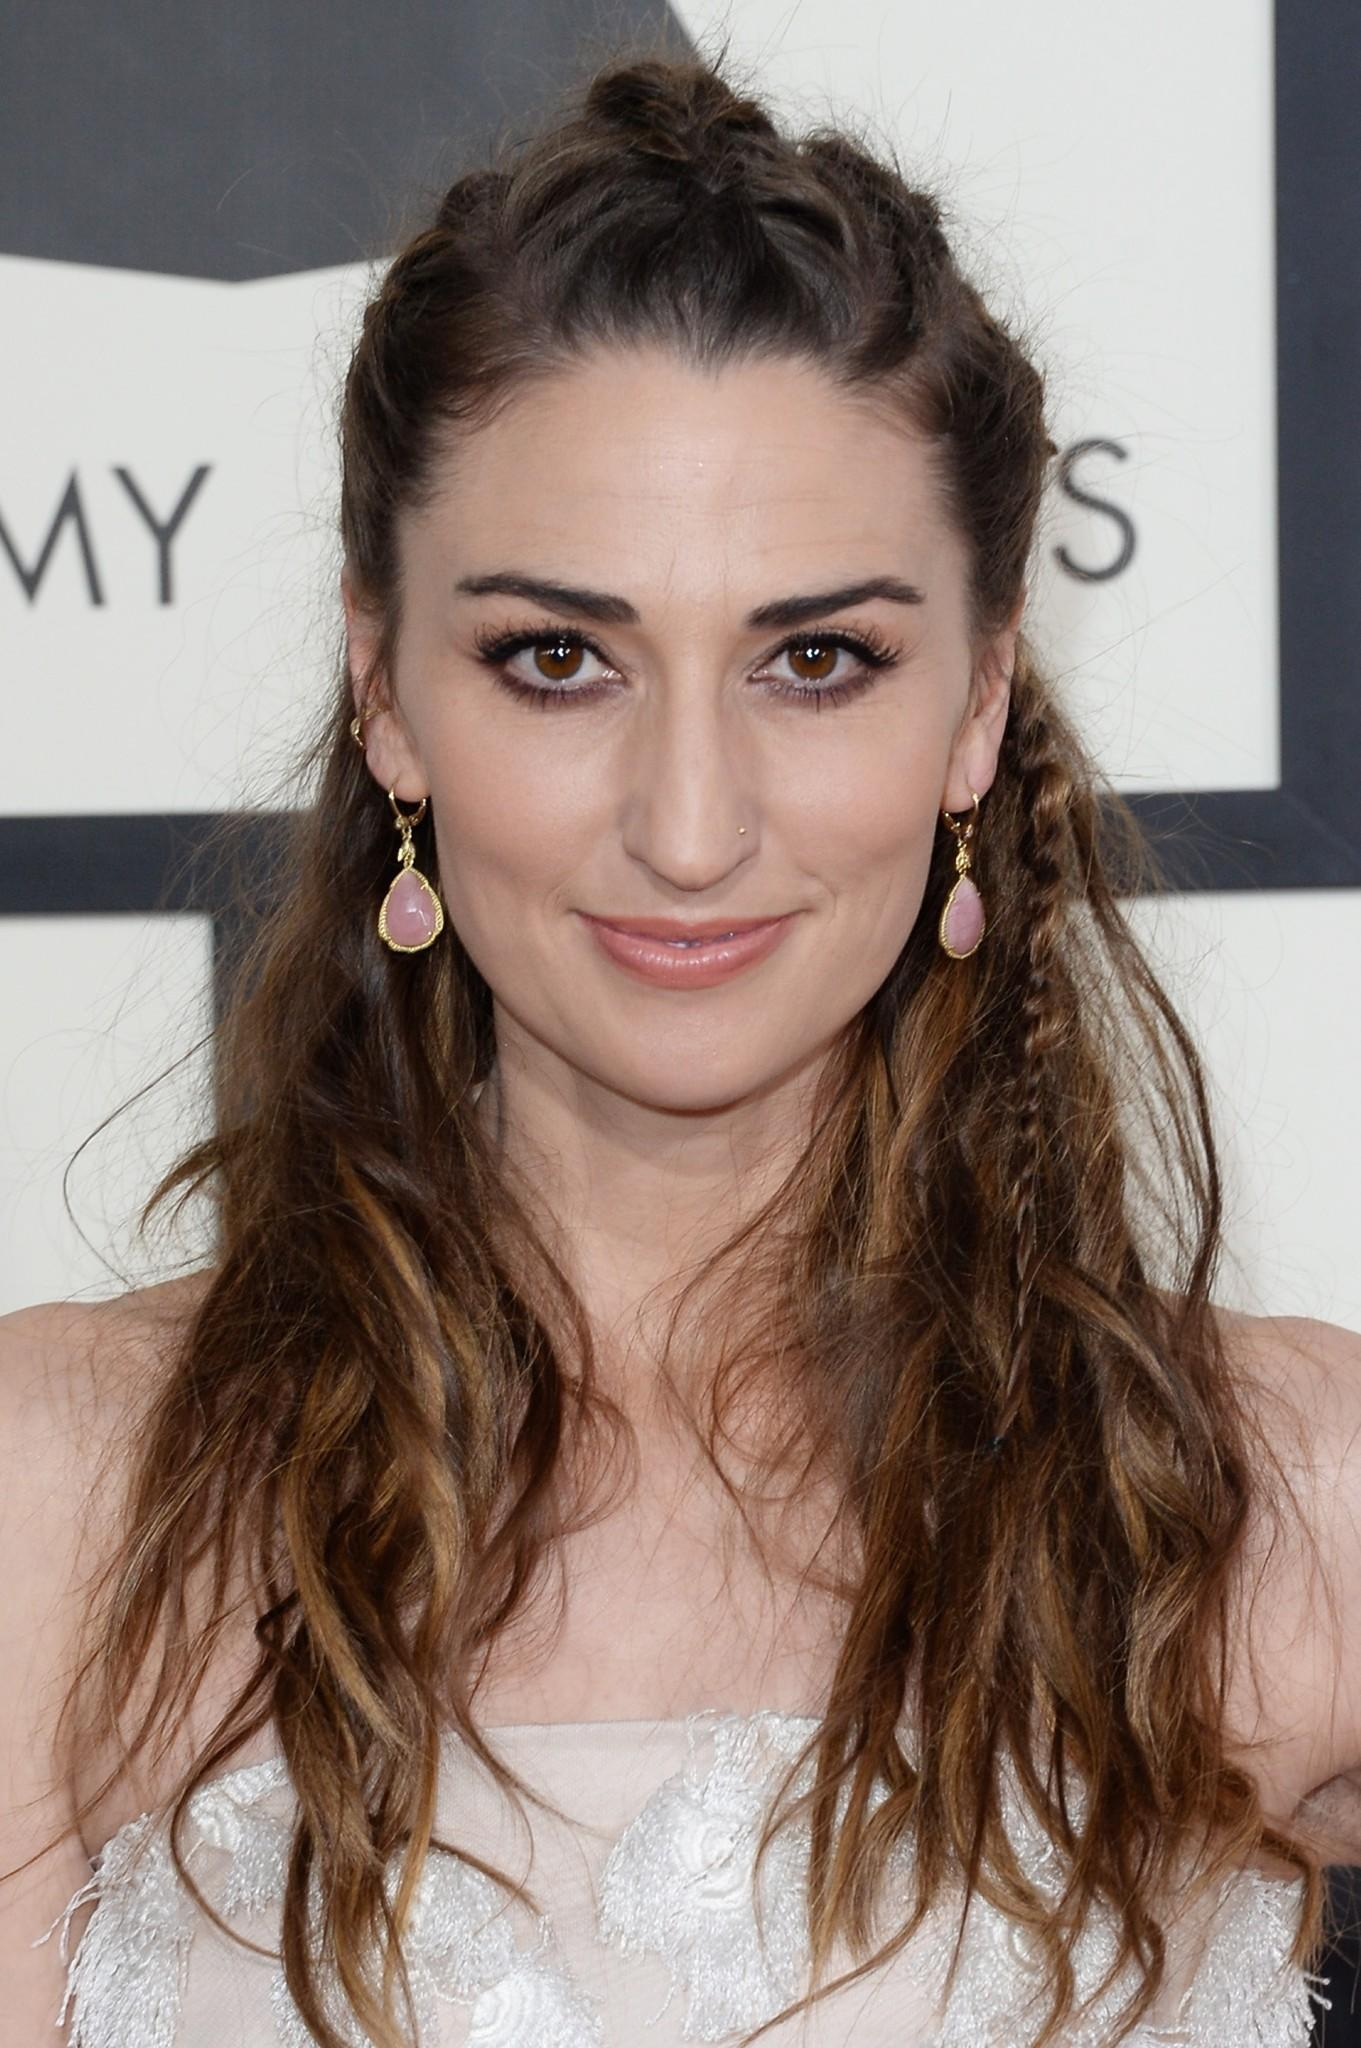 Grammys 2014 How Sara Bareilles Got Her Textured